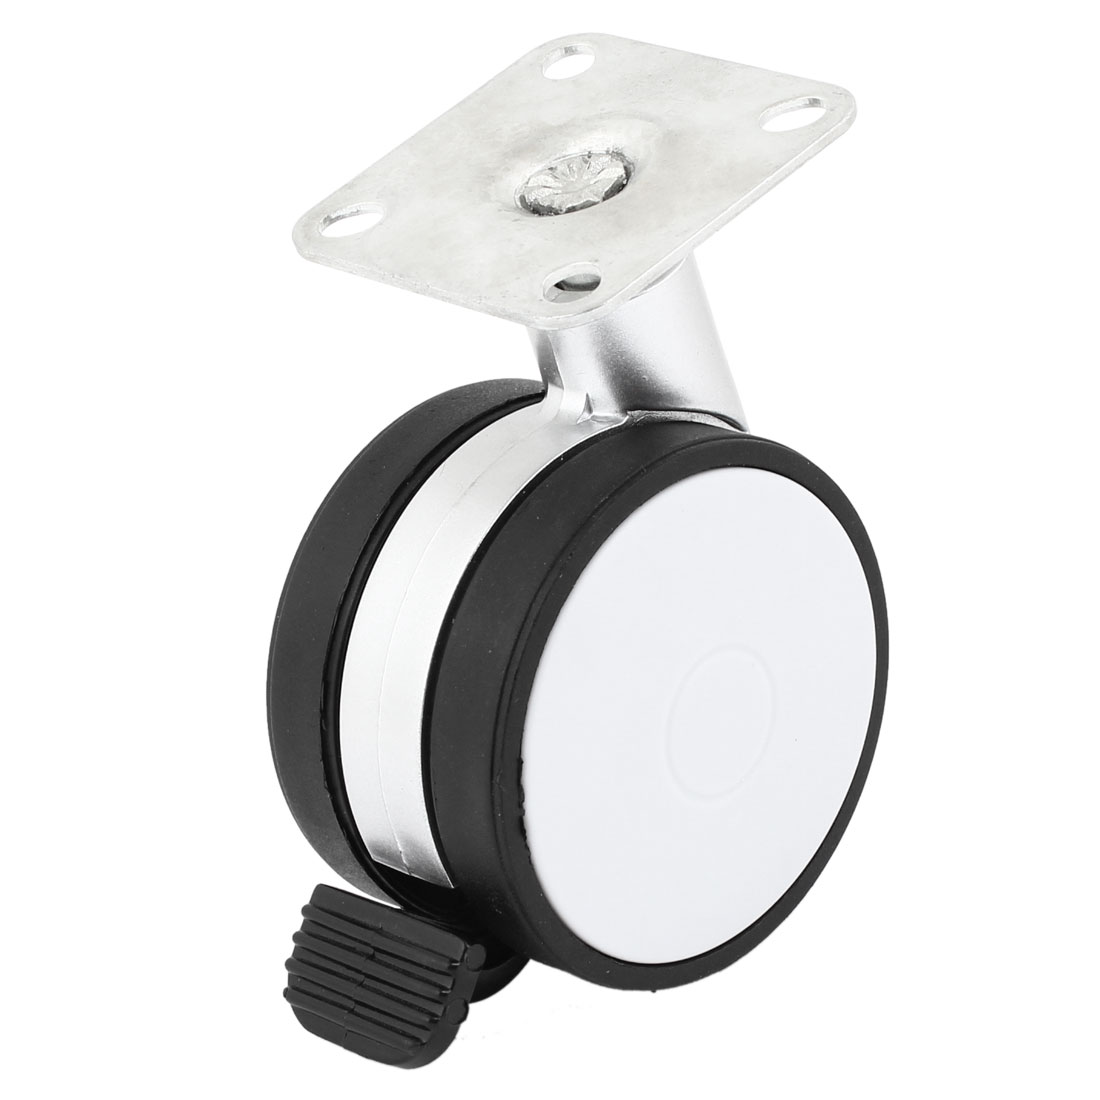 "Metal Rotatable Square Flat Plate 2.4"" Single Caster Wheel Black White"